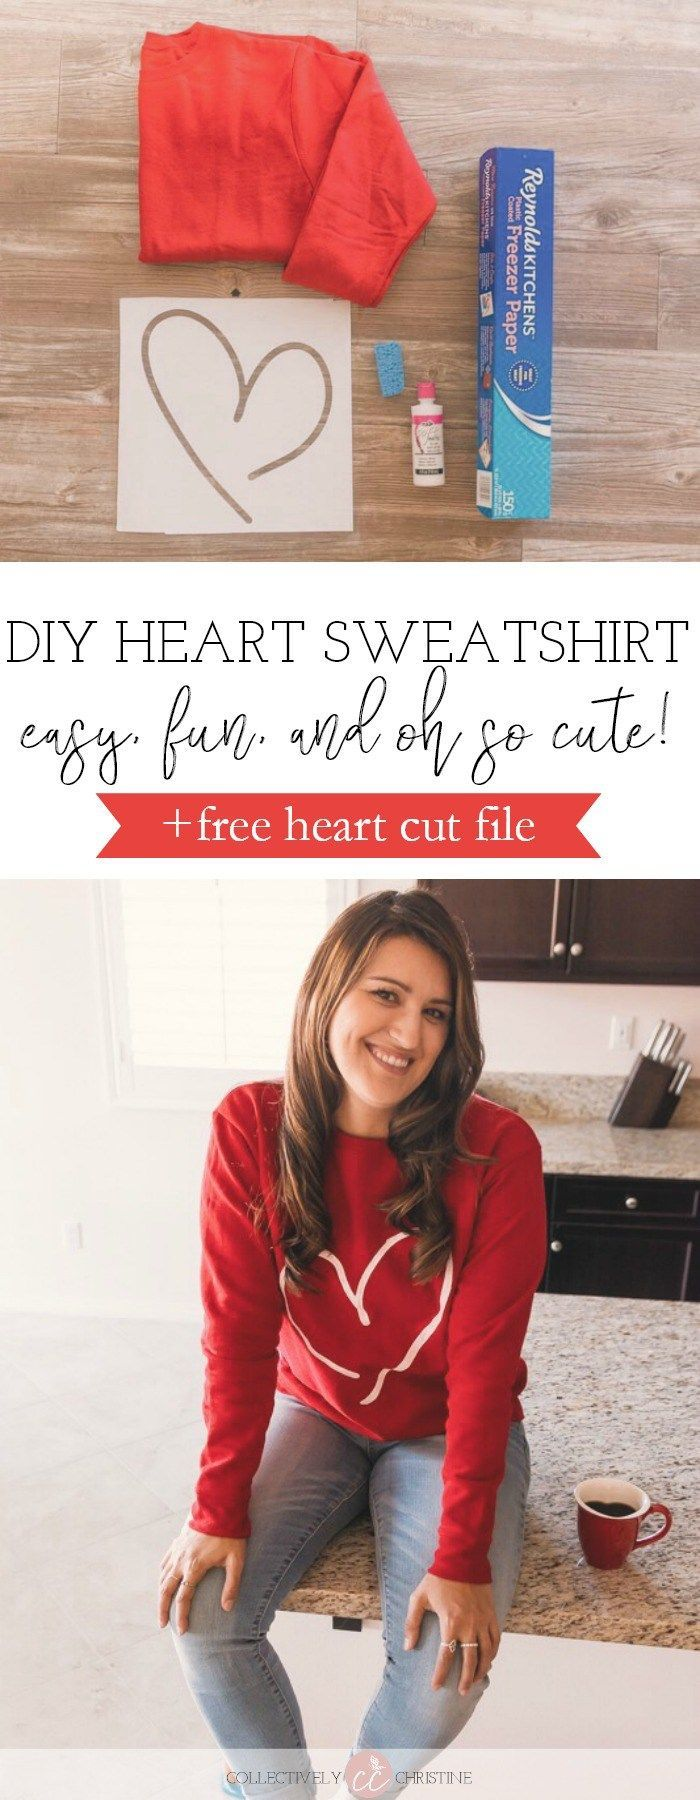 This adorable DIY heart sweatshirt is easy and fun to make. Don't forget to grab the free Silhouette cut file too. Happy Valentine's Day!